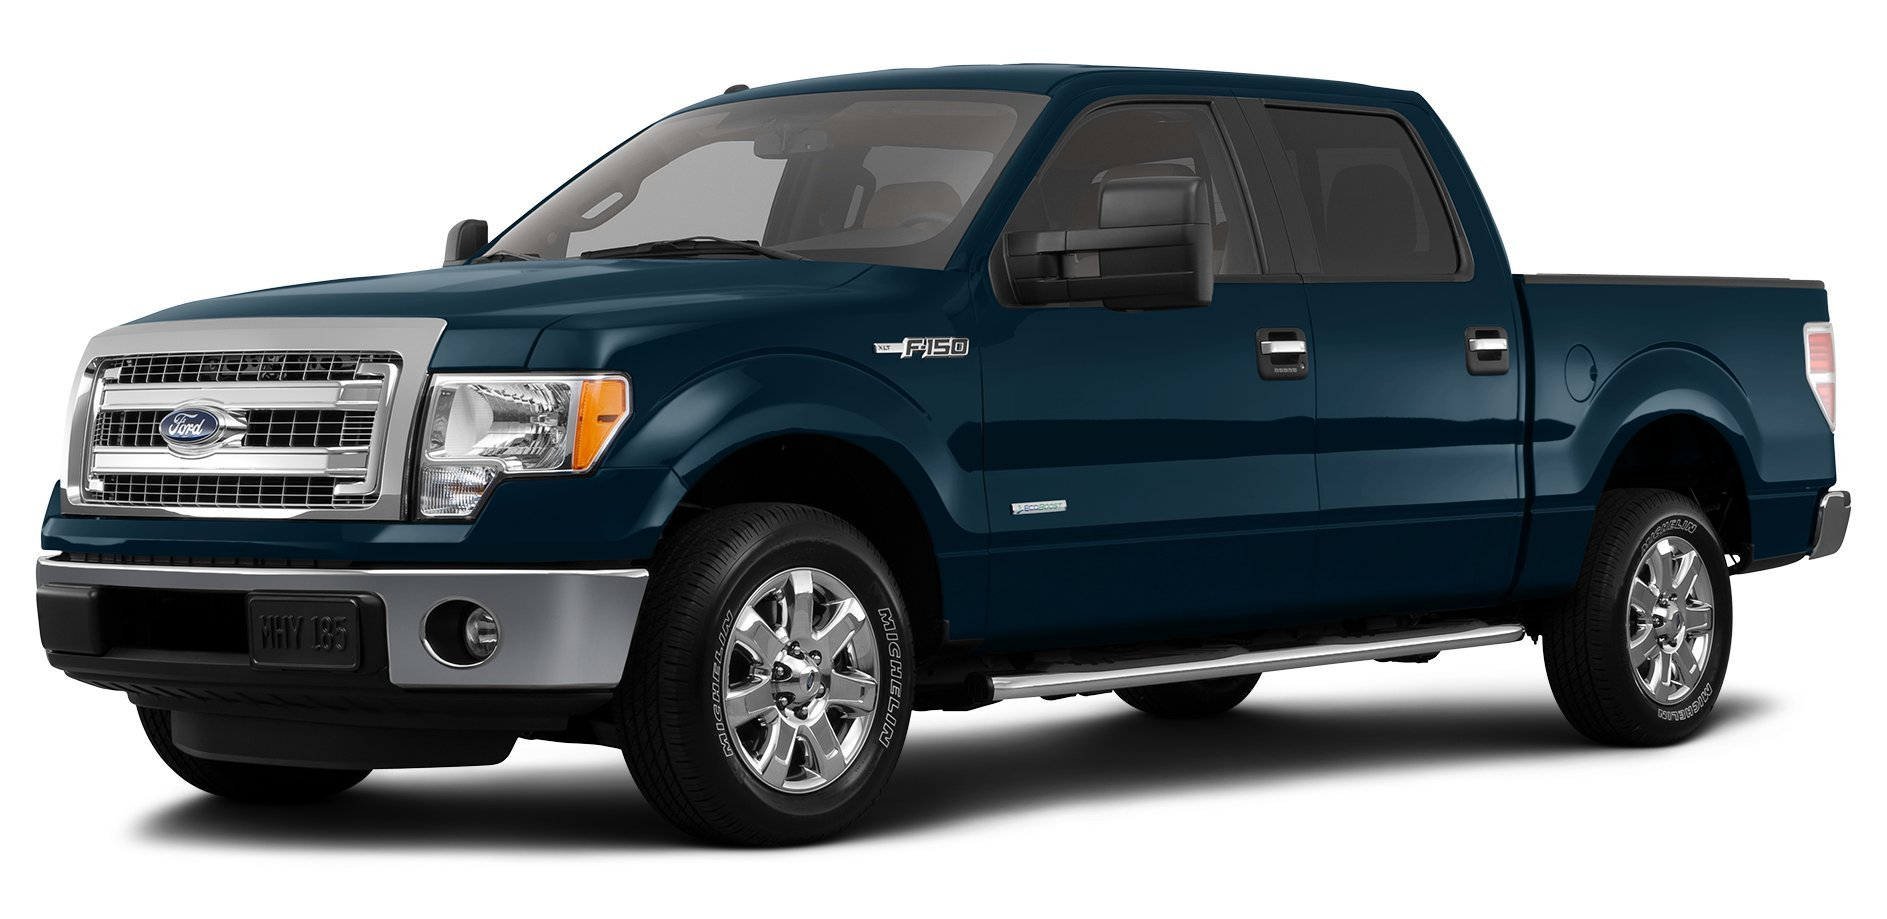 2013 nissan frontier reviews images and specs vehicles. Black Bedroom Furniture Sets. Home Design Ideas